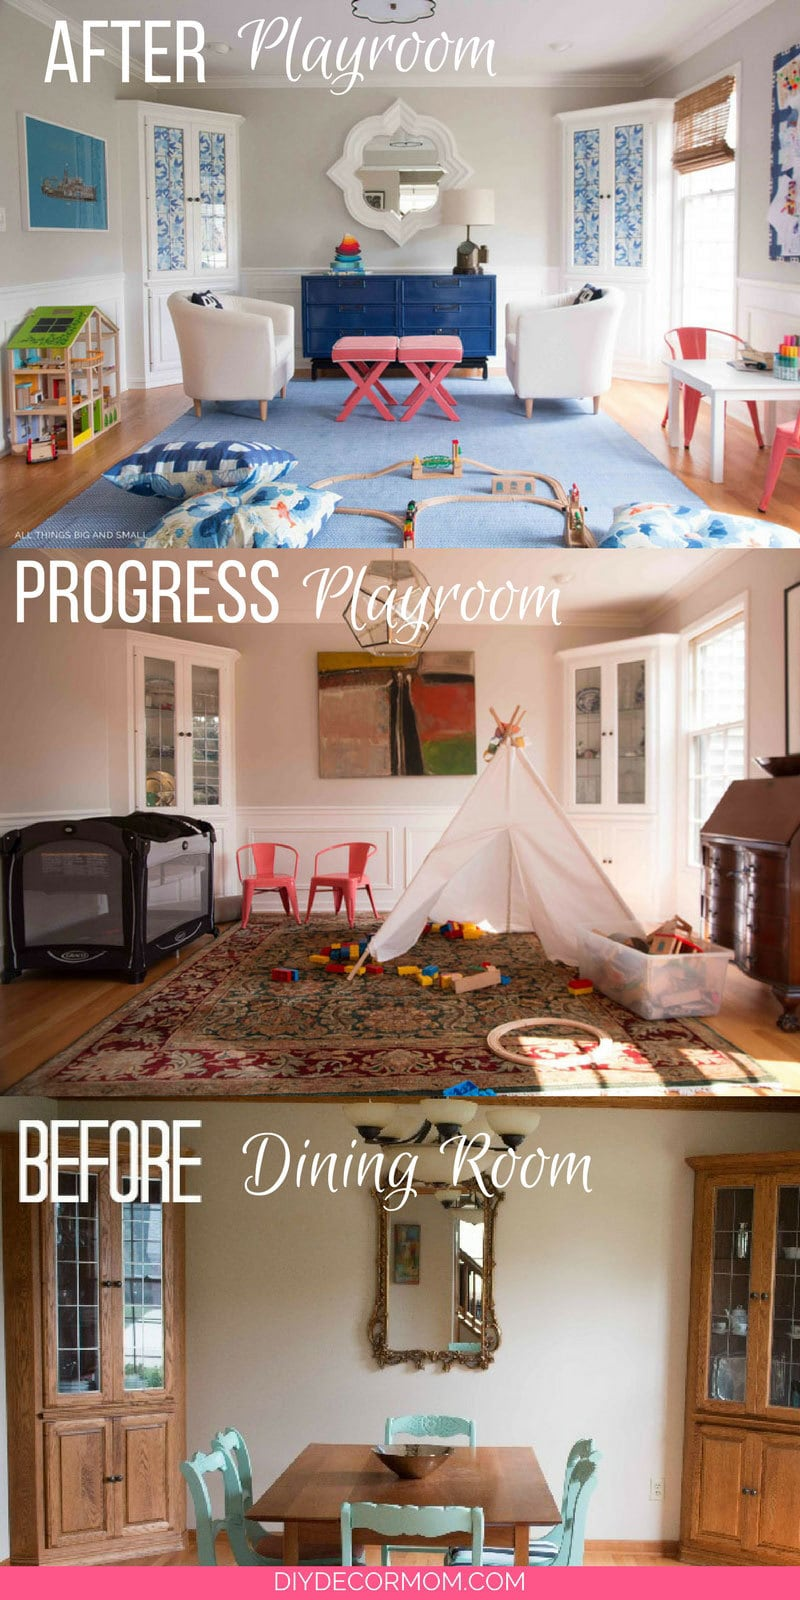 Before and After Playroom Decor Makeover